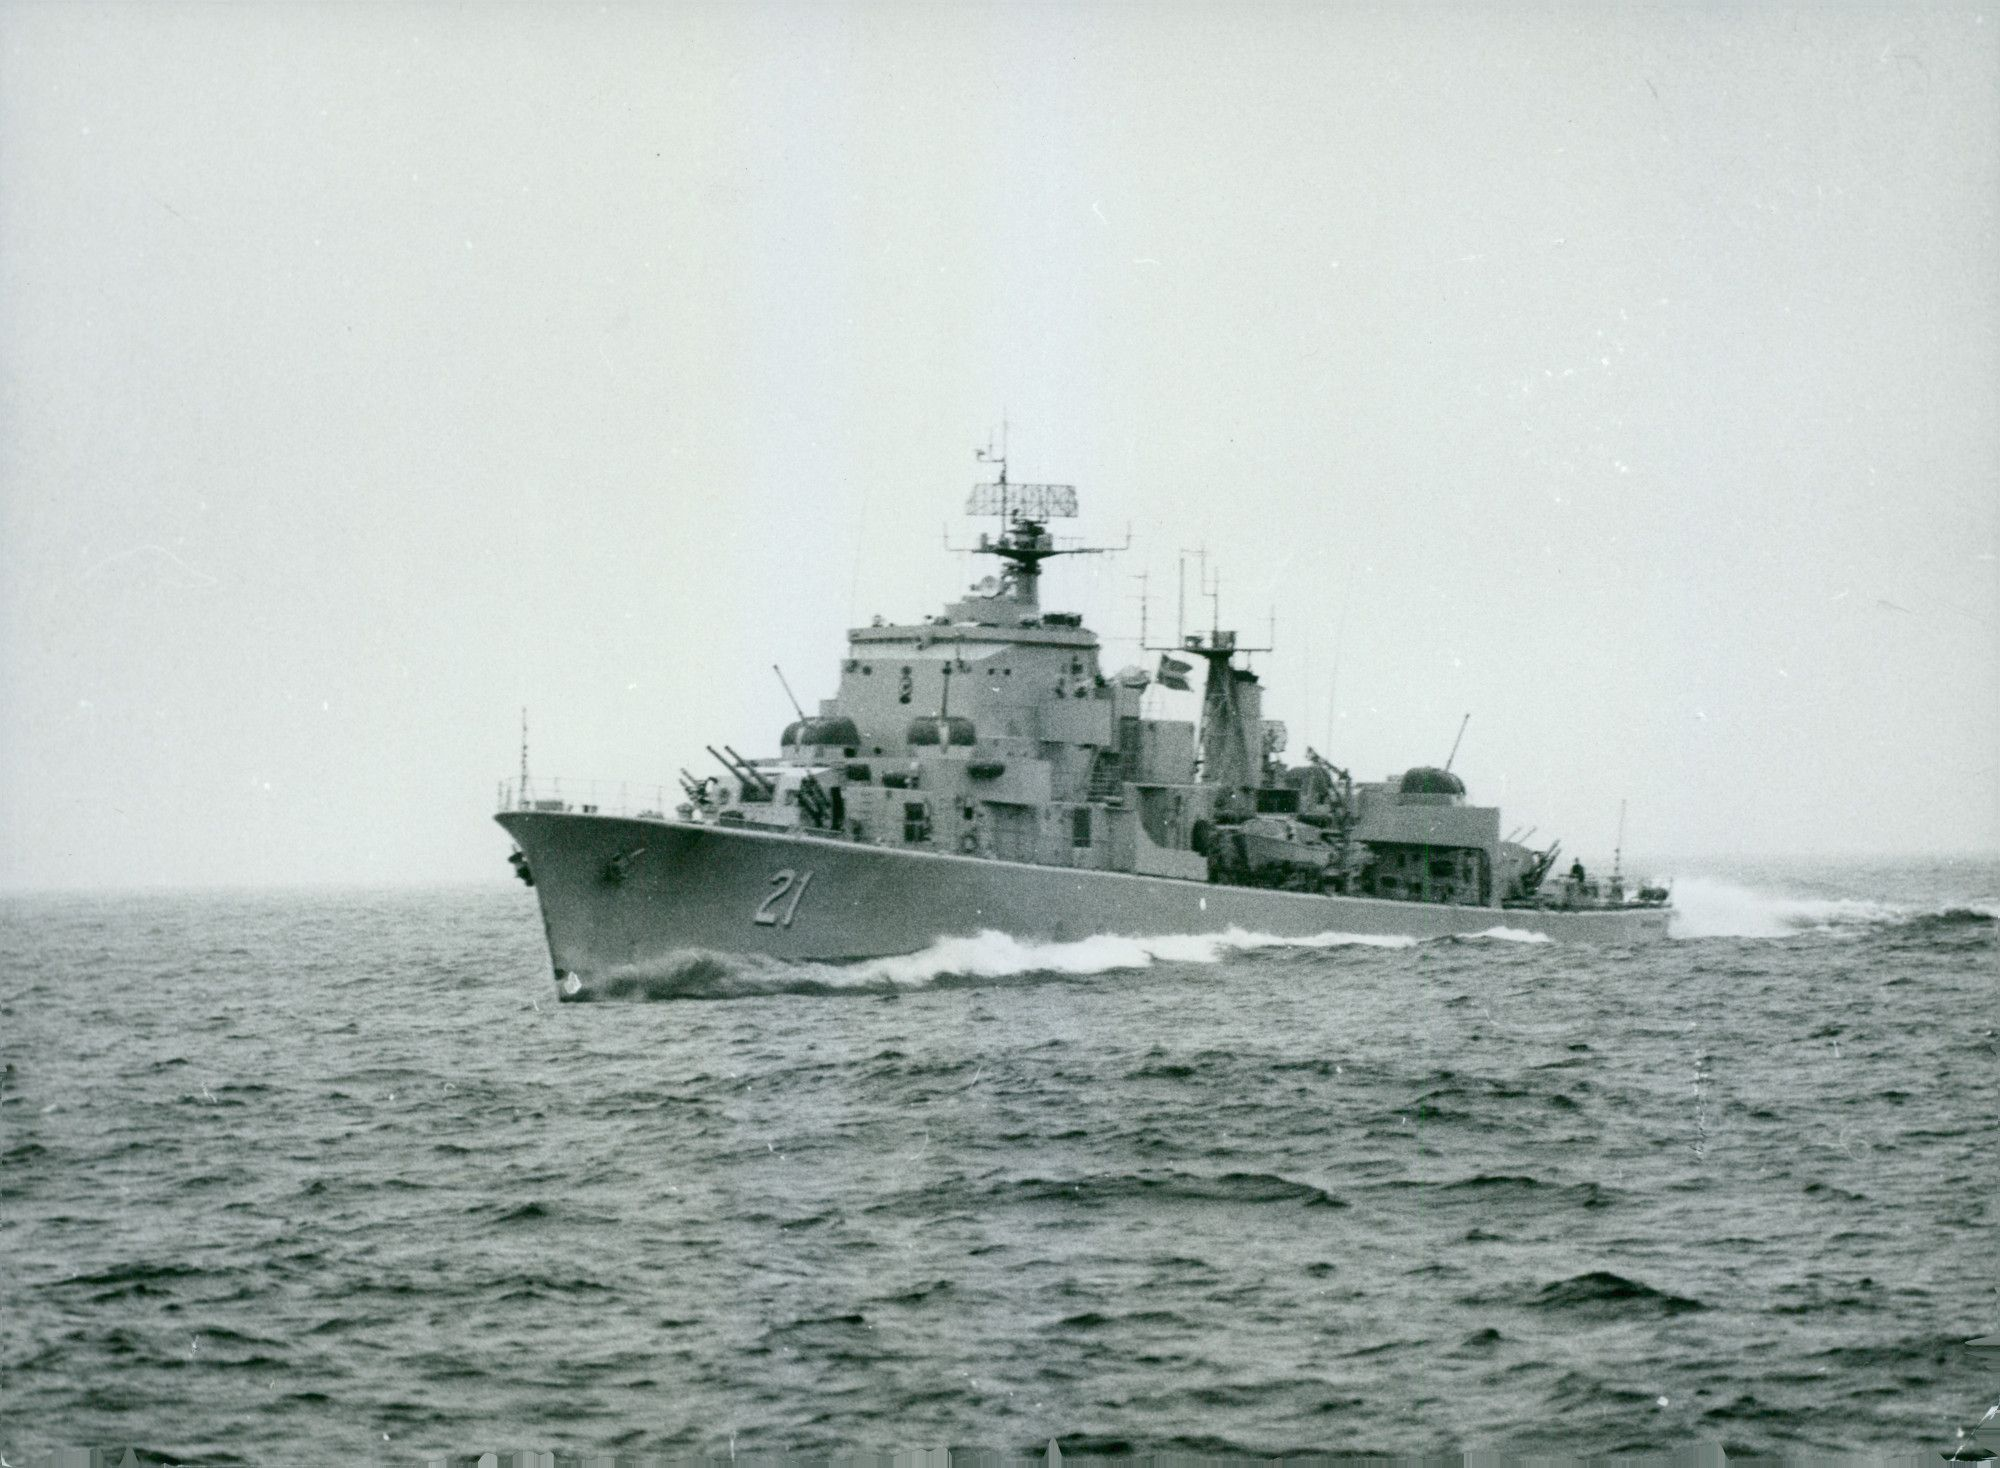 Fleet Hunter Hms Sigurd 21 At Sea Scan Tt 00561304 Ims Vintage Photos